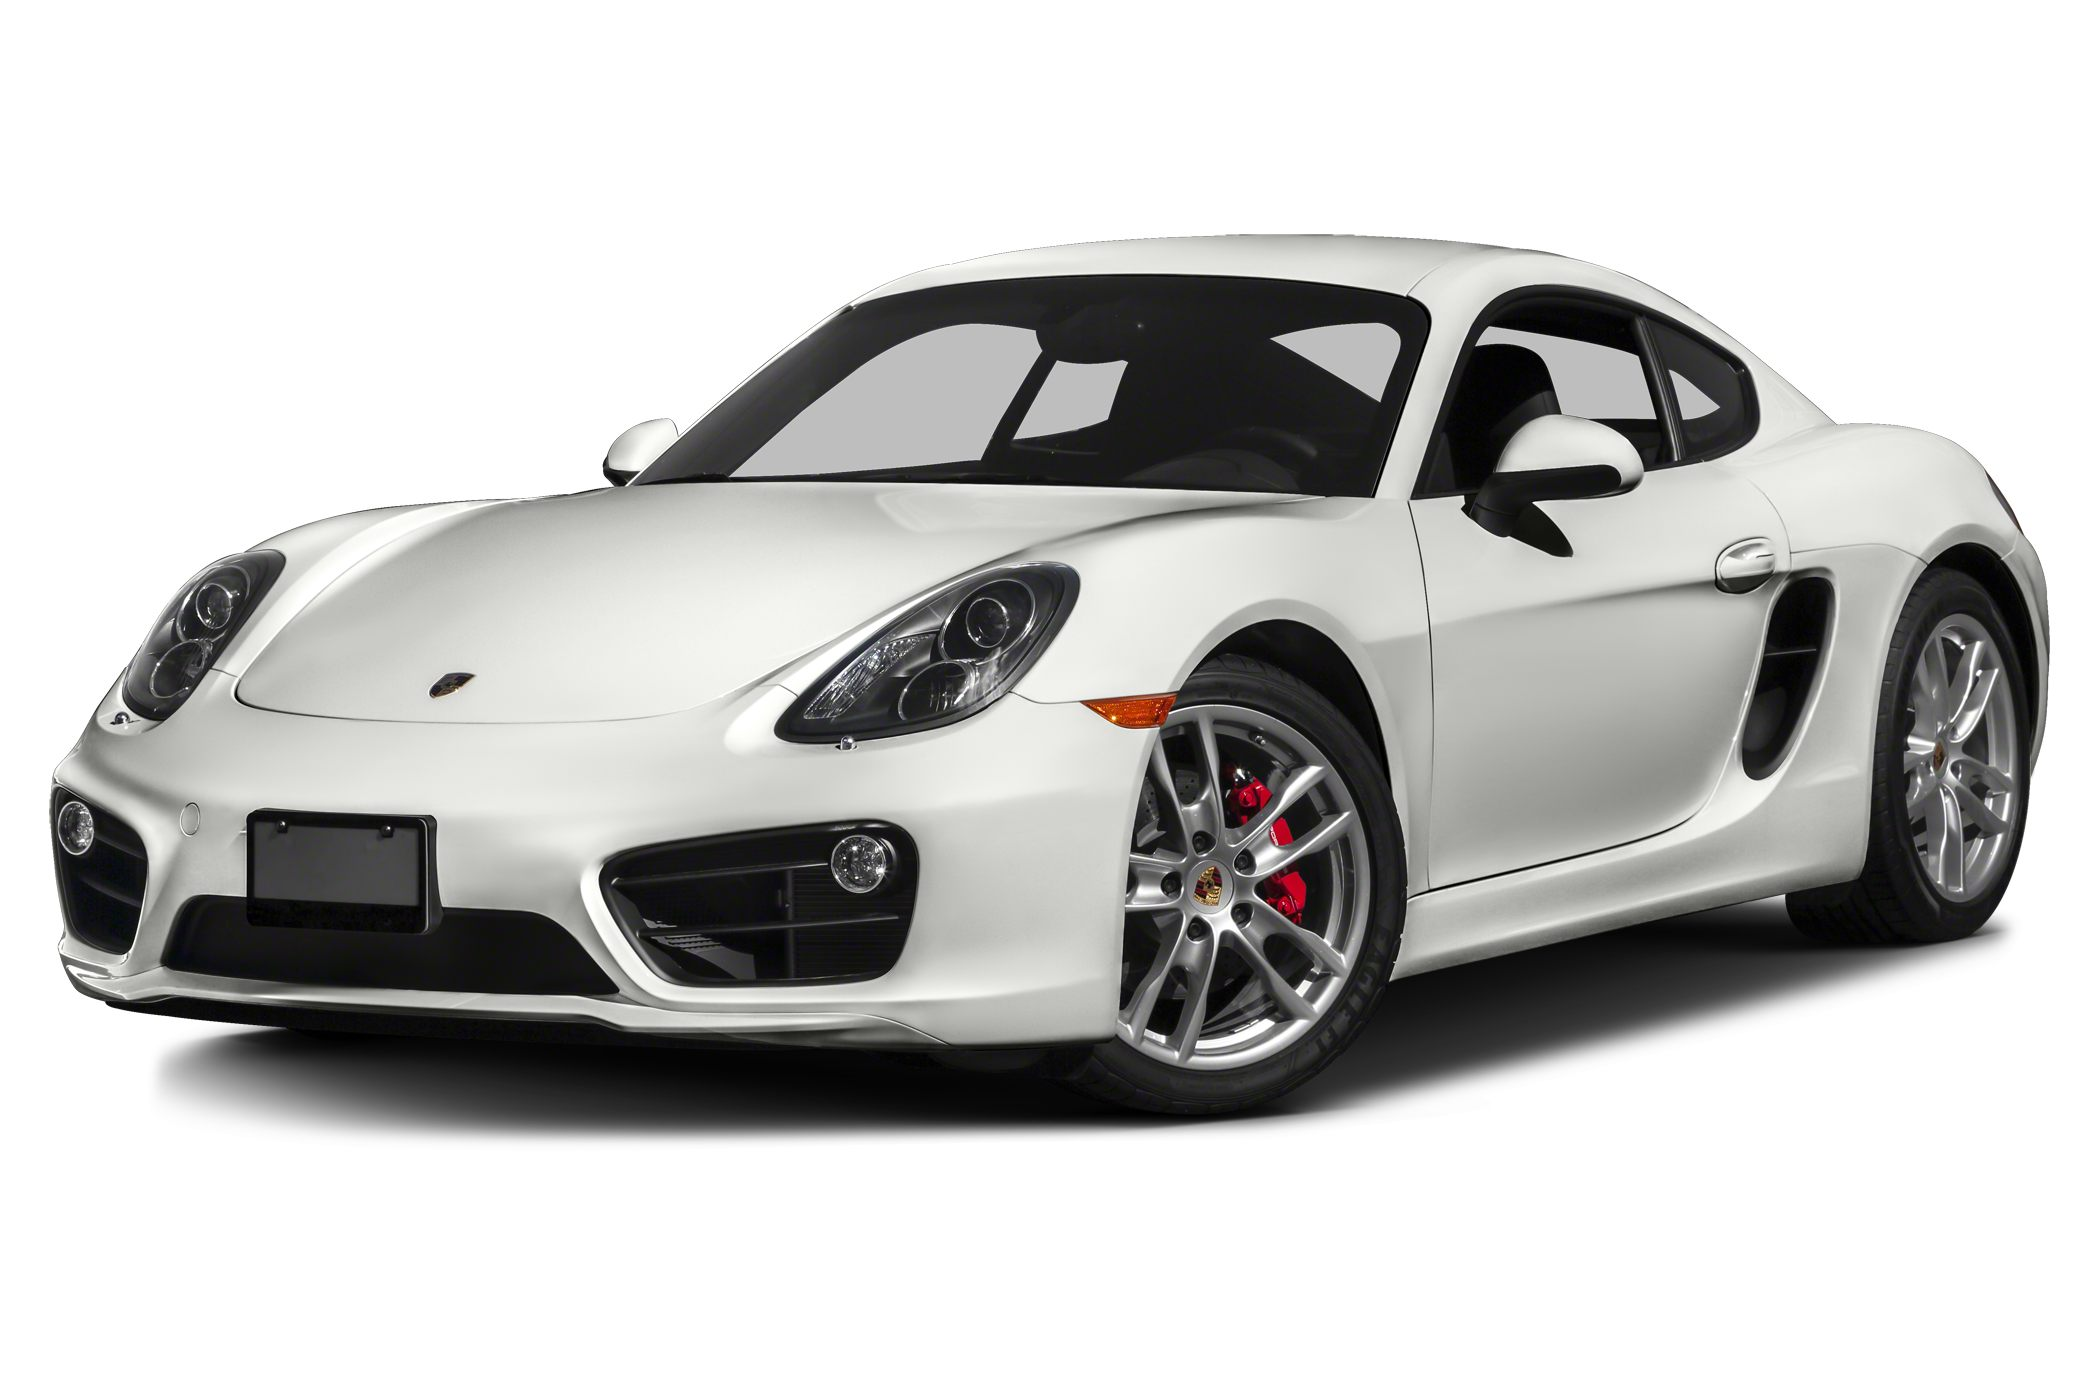 2014 Porsche Cayman S Coupe for sale in Kingsport for $67,500 with 4,730 miles